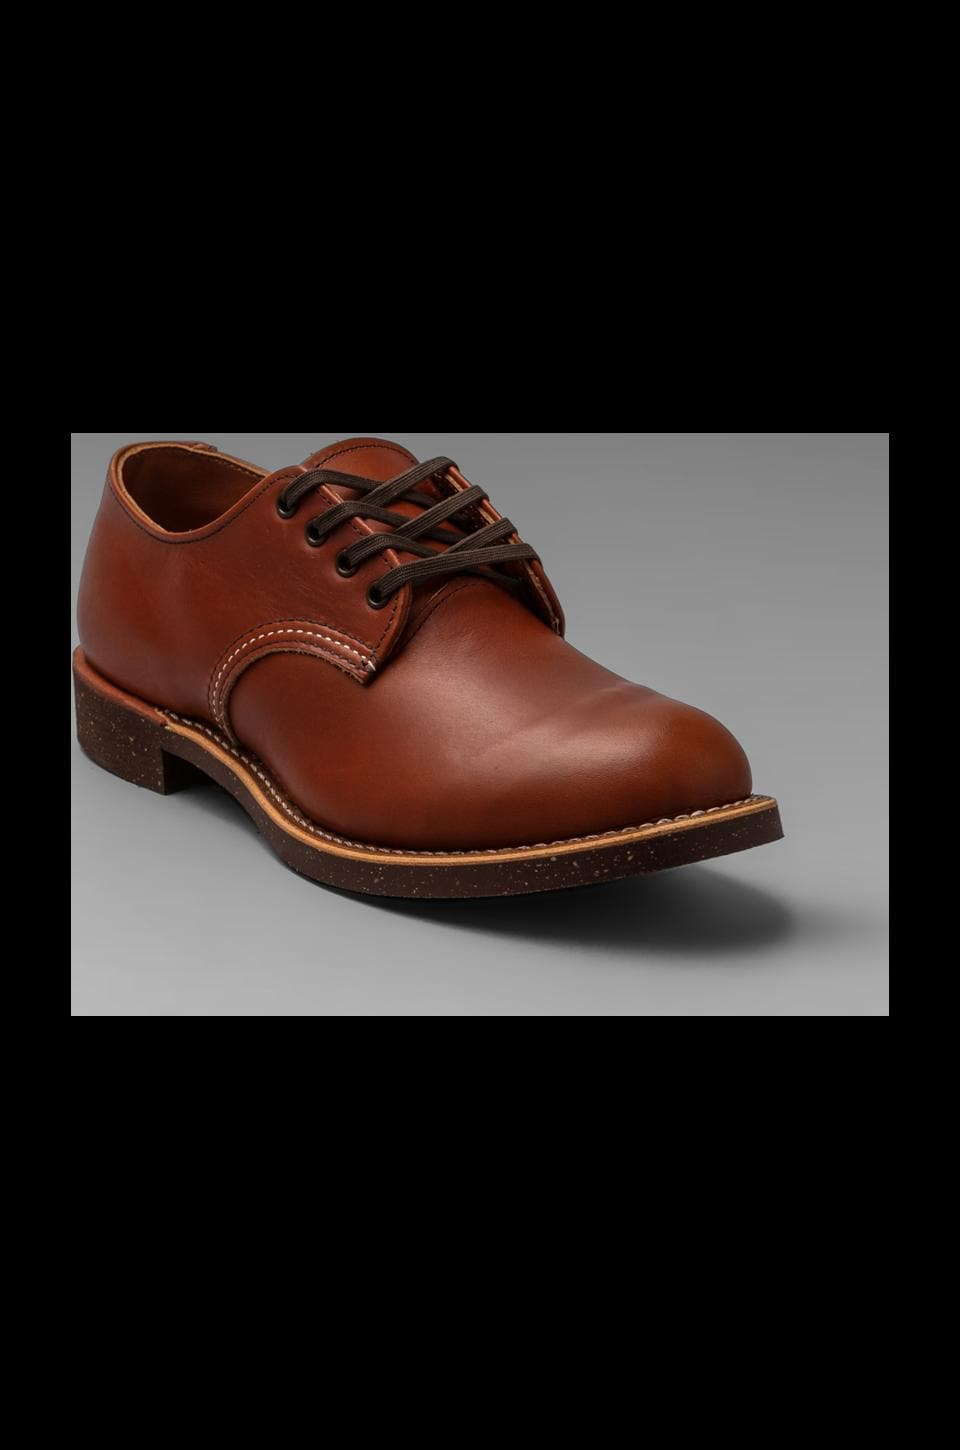 Red Wing Shoes Work Oxford in Brick Settler